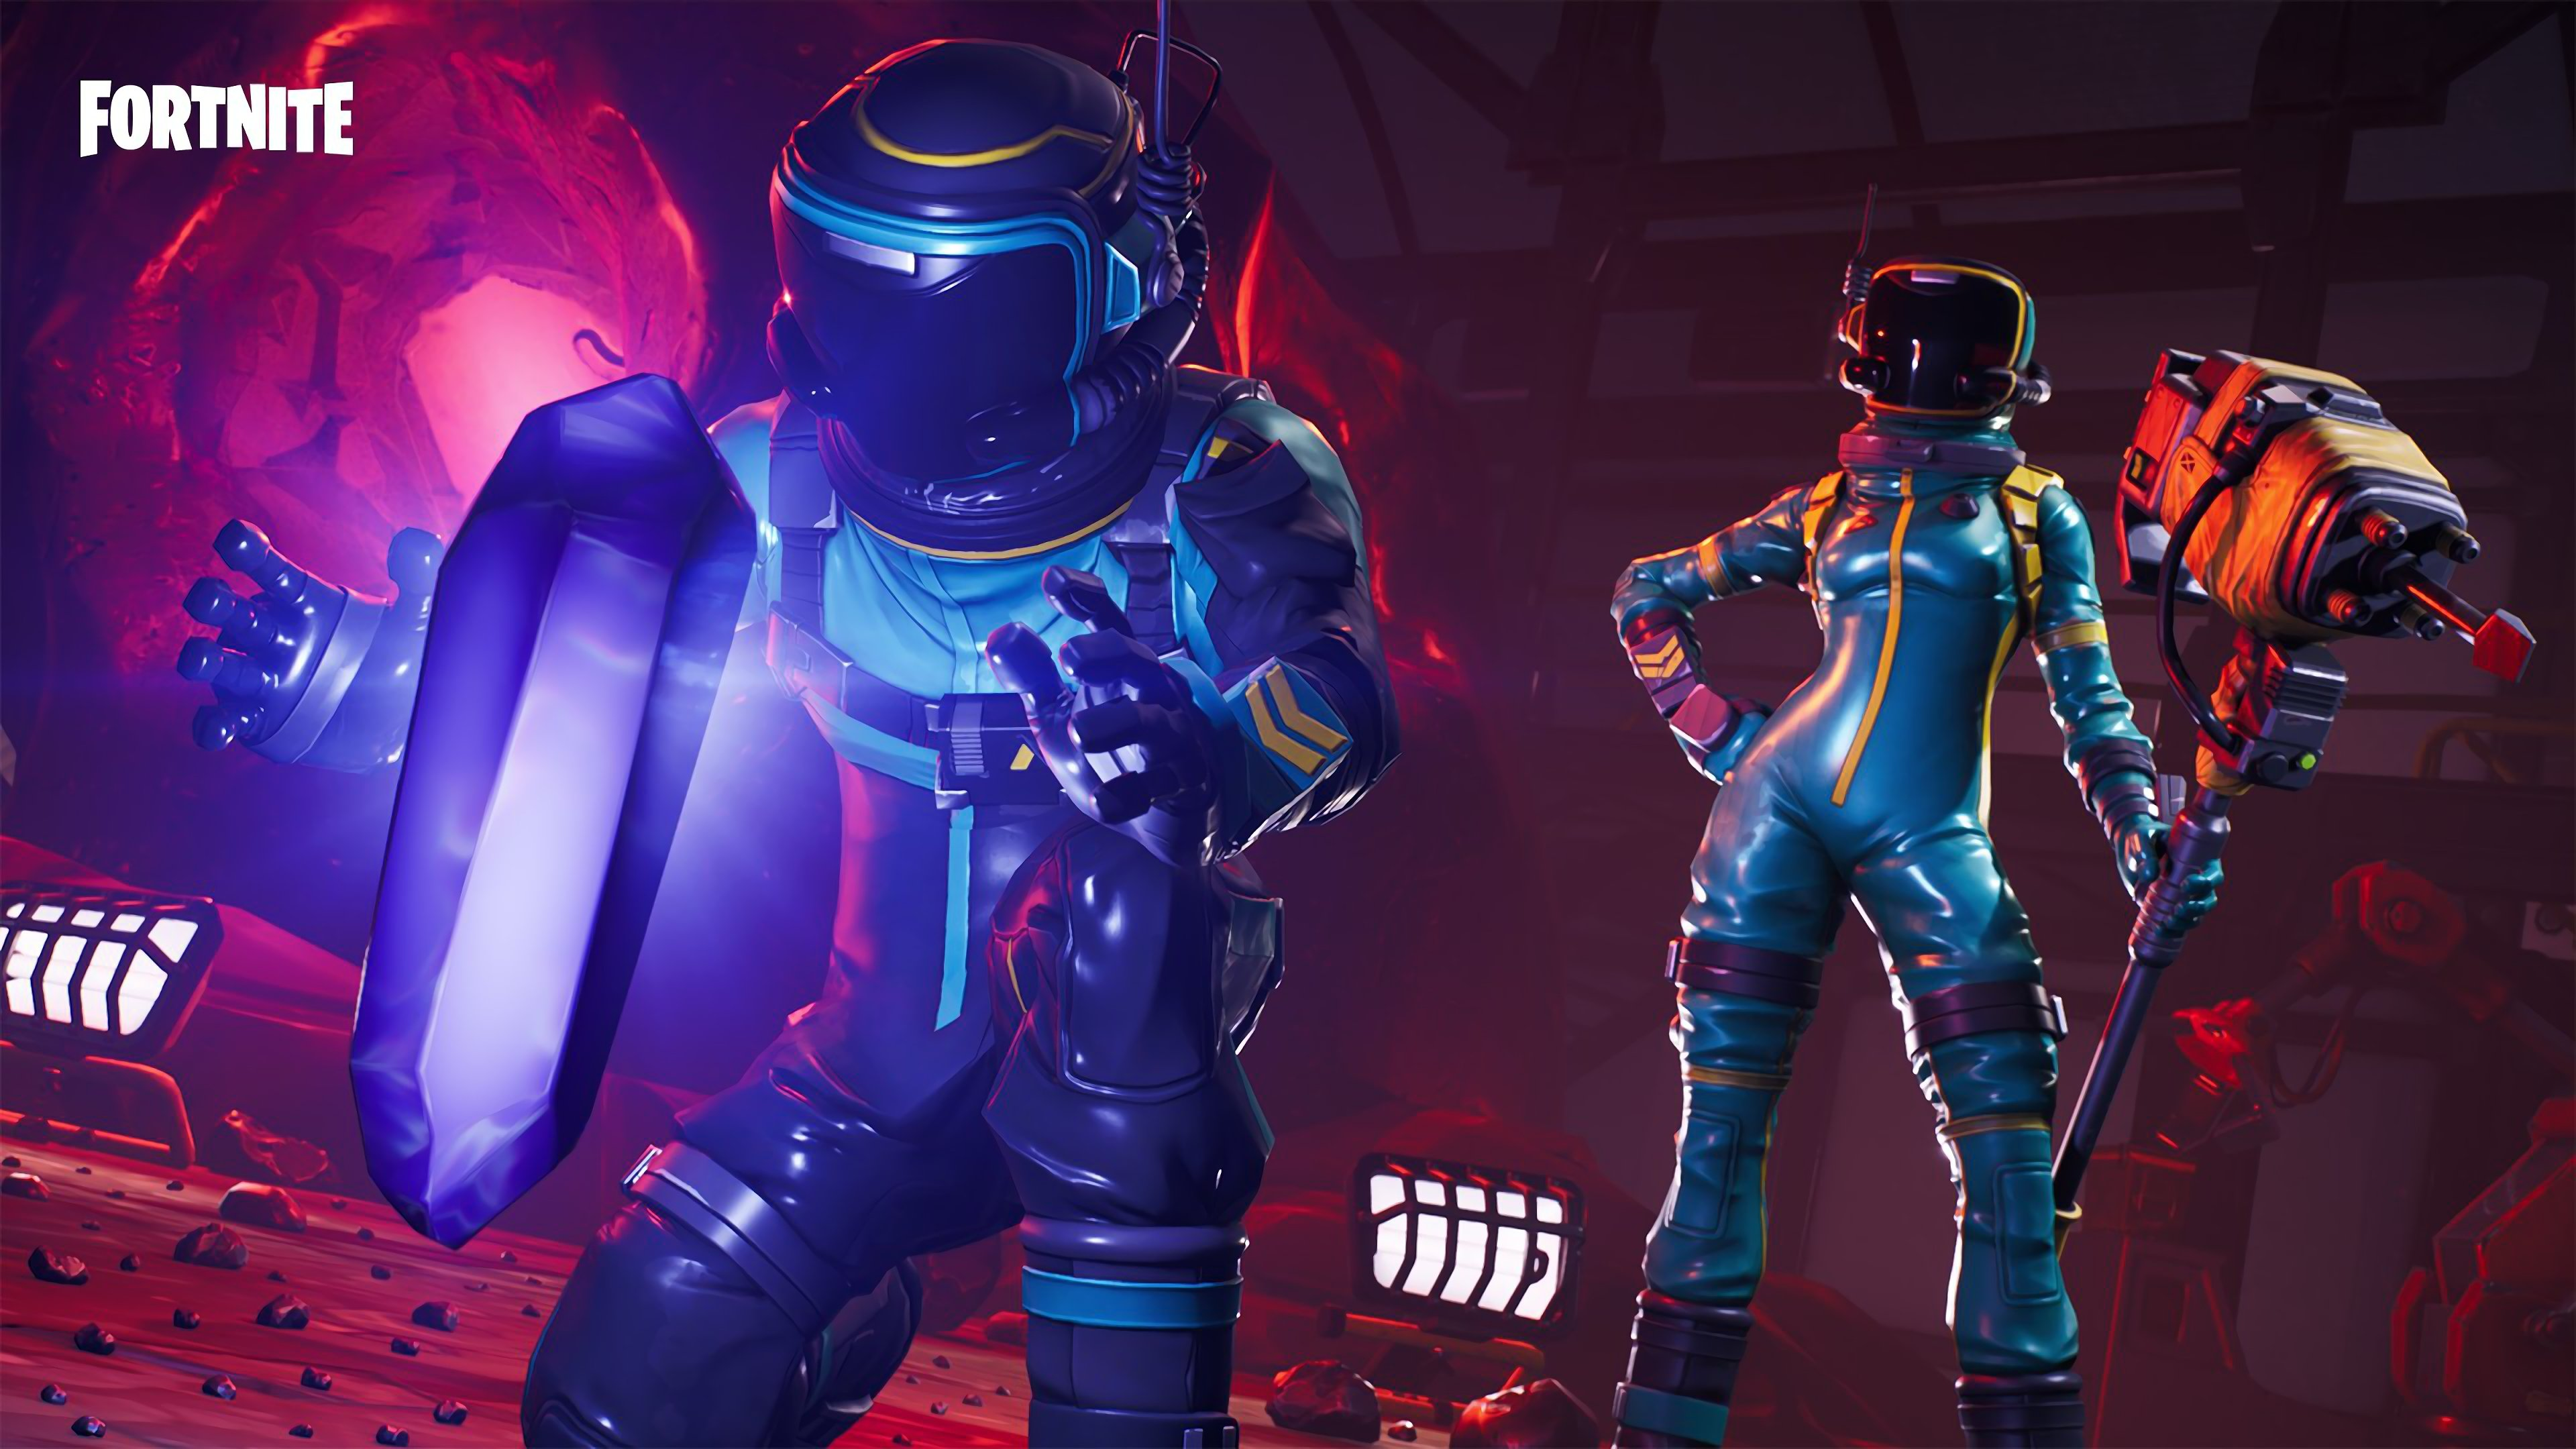 Fortnite background 58 3840x2160